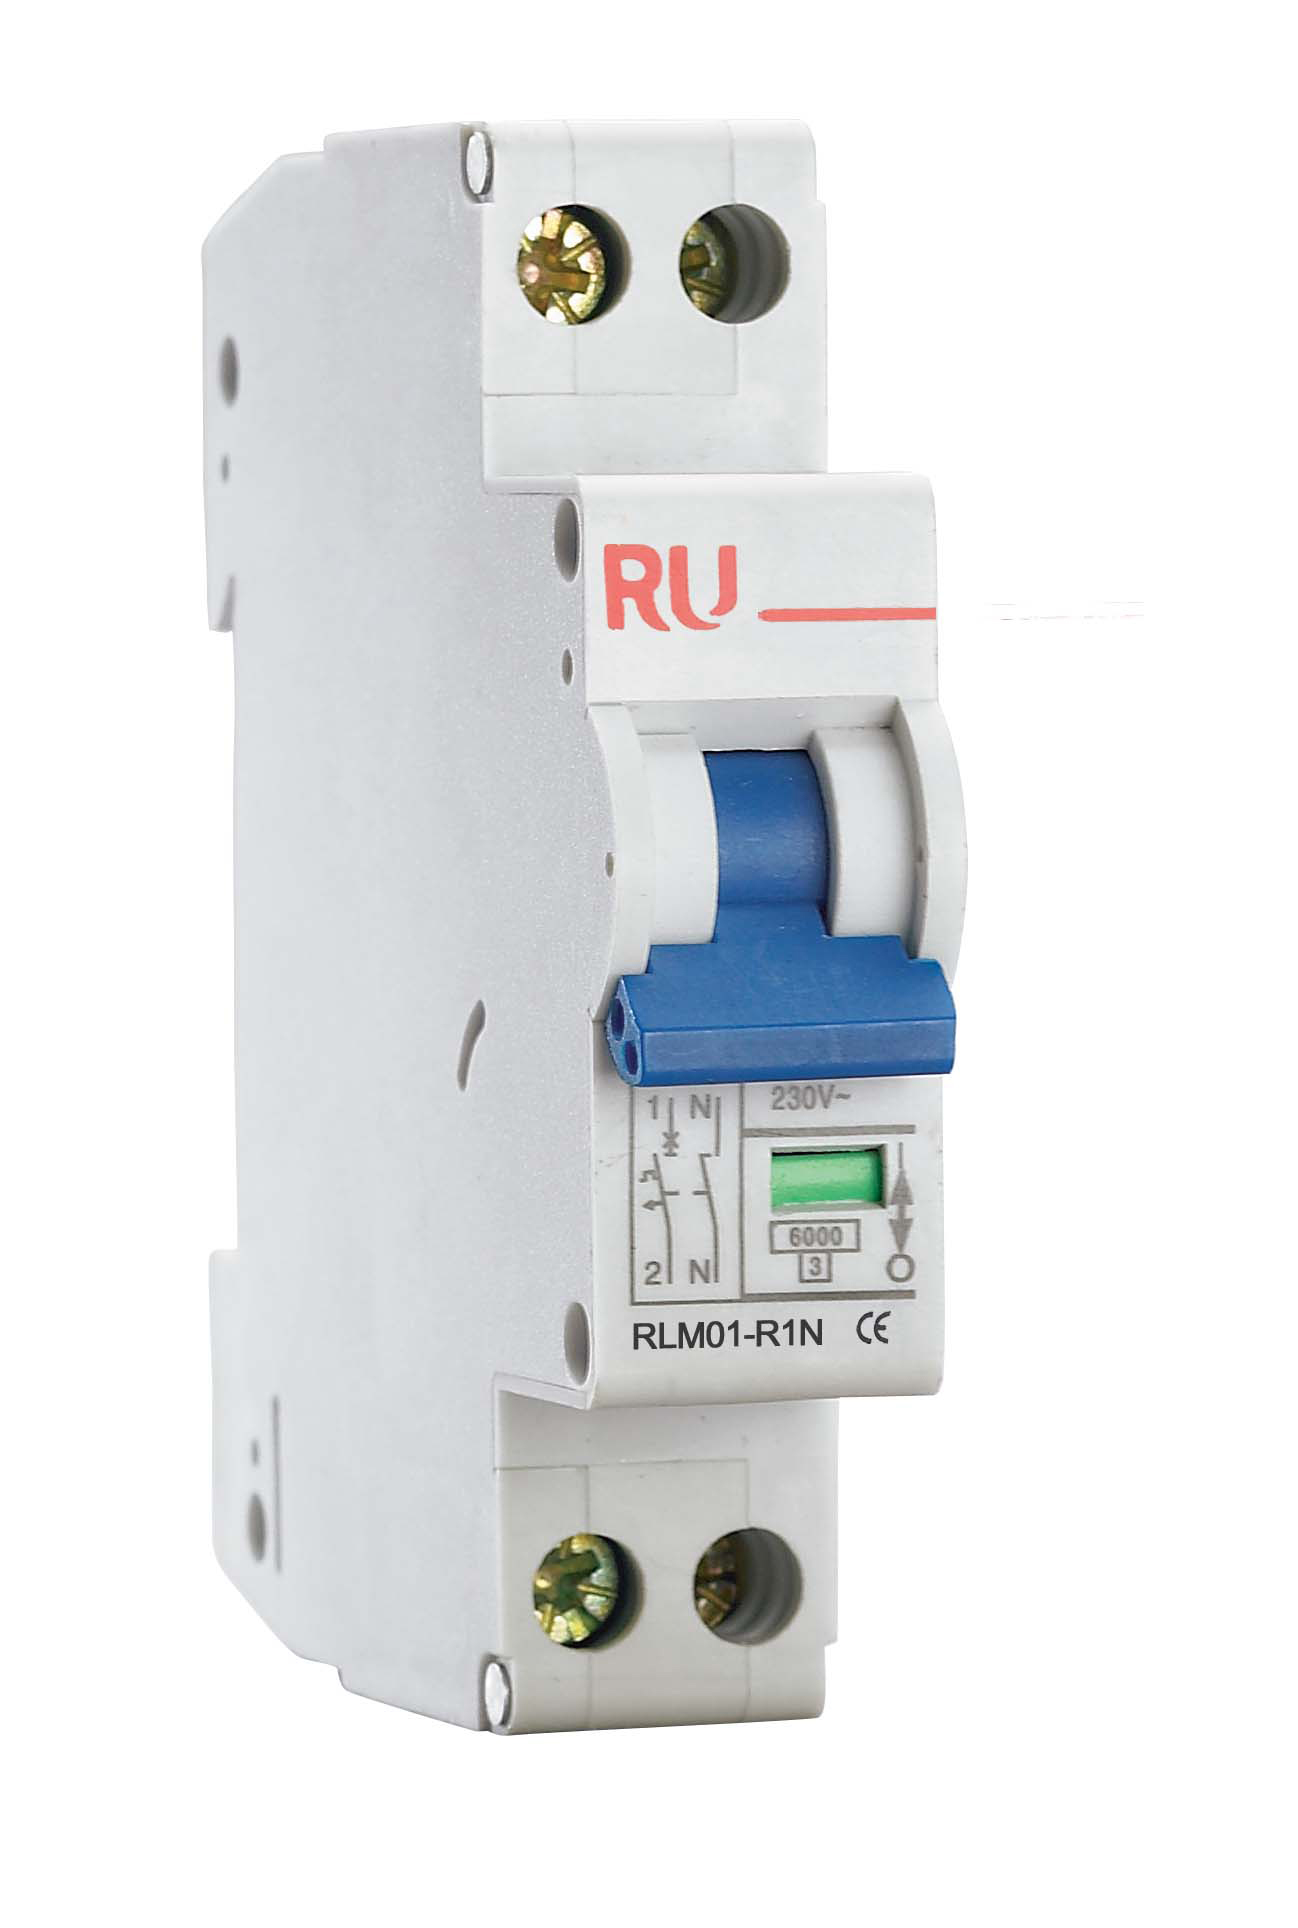 Guide To Consumer Units At Uk Electrical Supplies Domestic Fuse Box This Is An Mcb Minature Circuit Breaker Which Automatic Protection Device In The Fusebox That Switches Off A If They Detect Fault